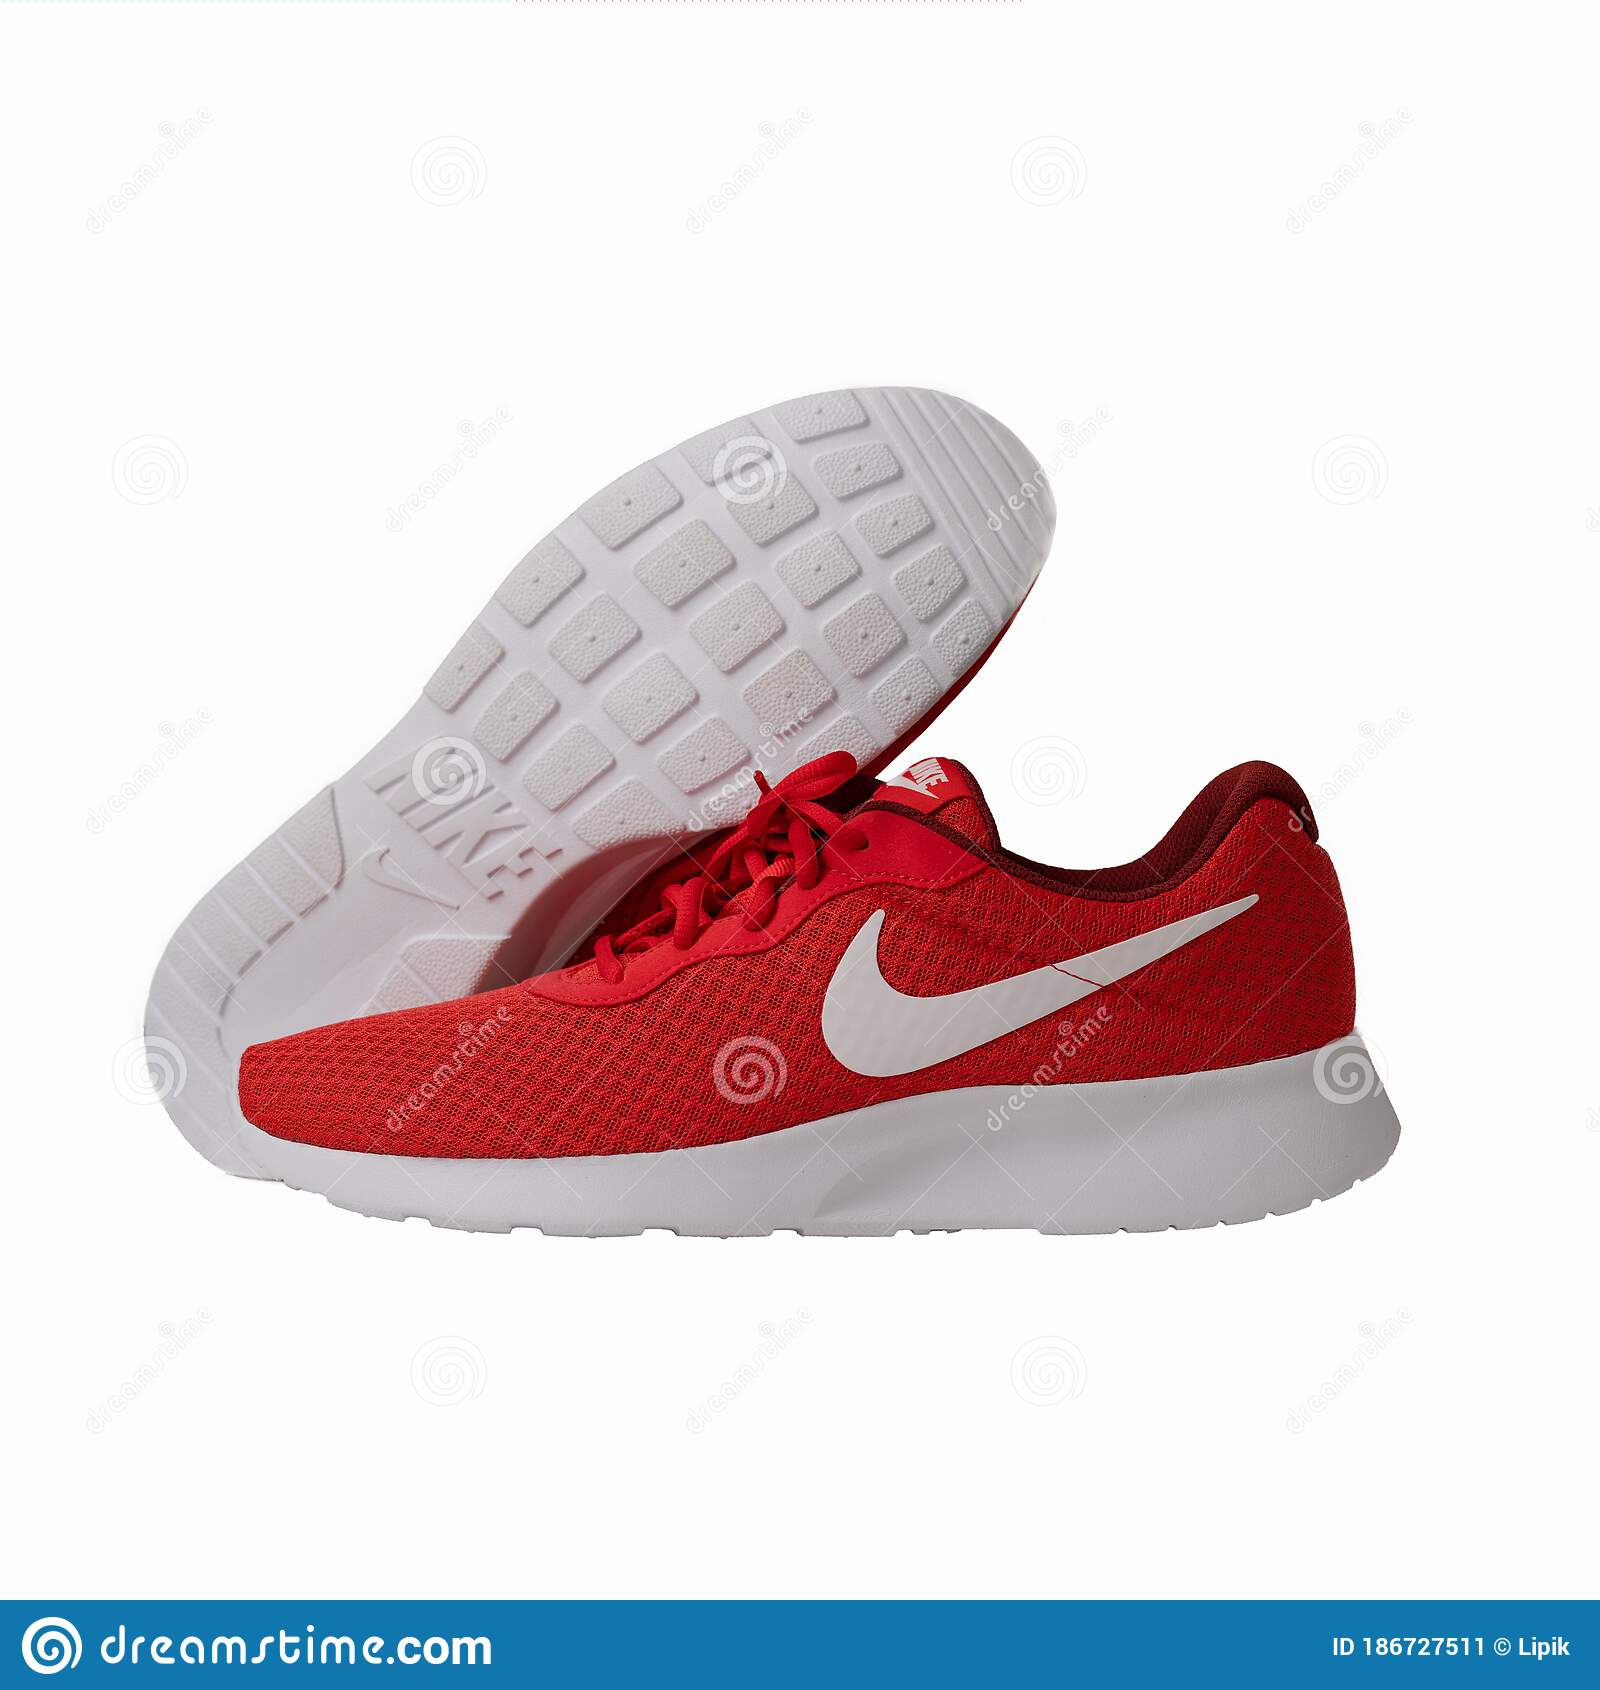 Silla Una buena amiga adoptar  Red Nike Brand Sneakers. Popular Lightweight Shoes Model Lace-up Model For  Fitness And Jogging With Red Top And White Editorial Photo - Image of  footwear, logo: 186727511